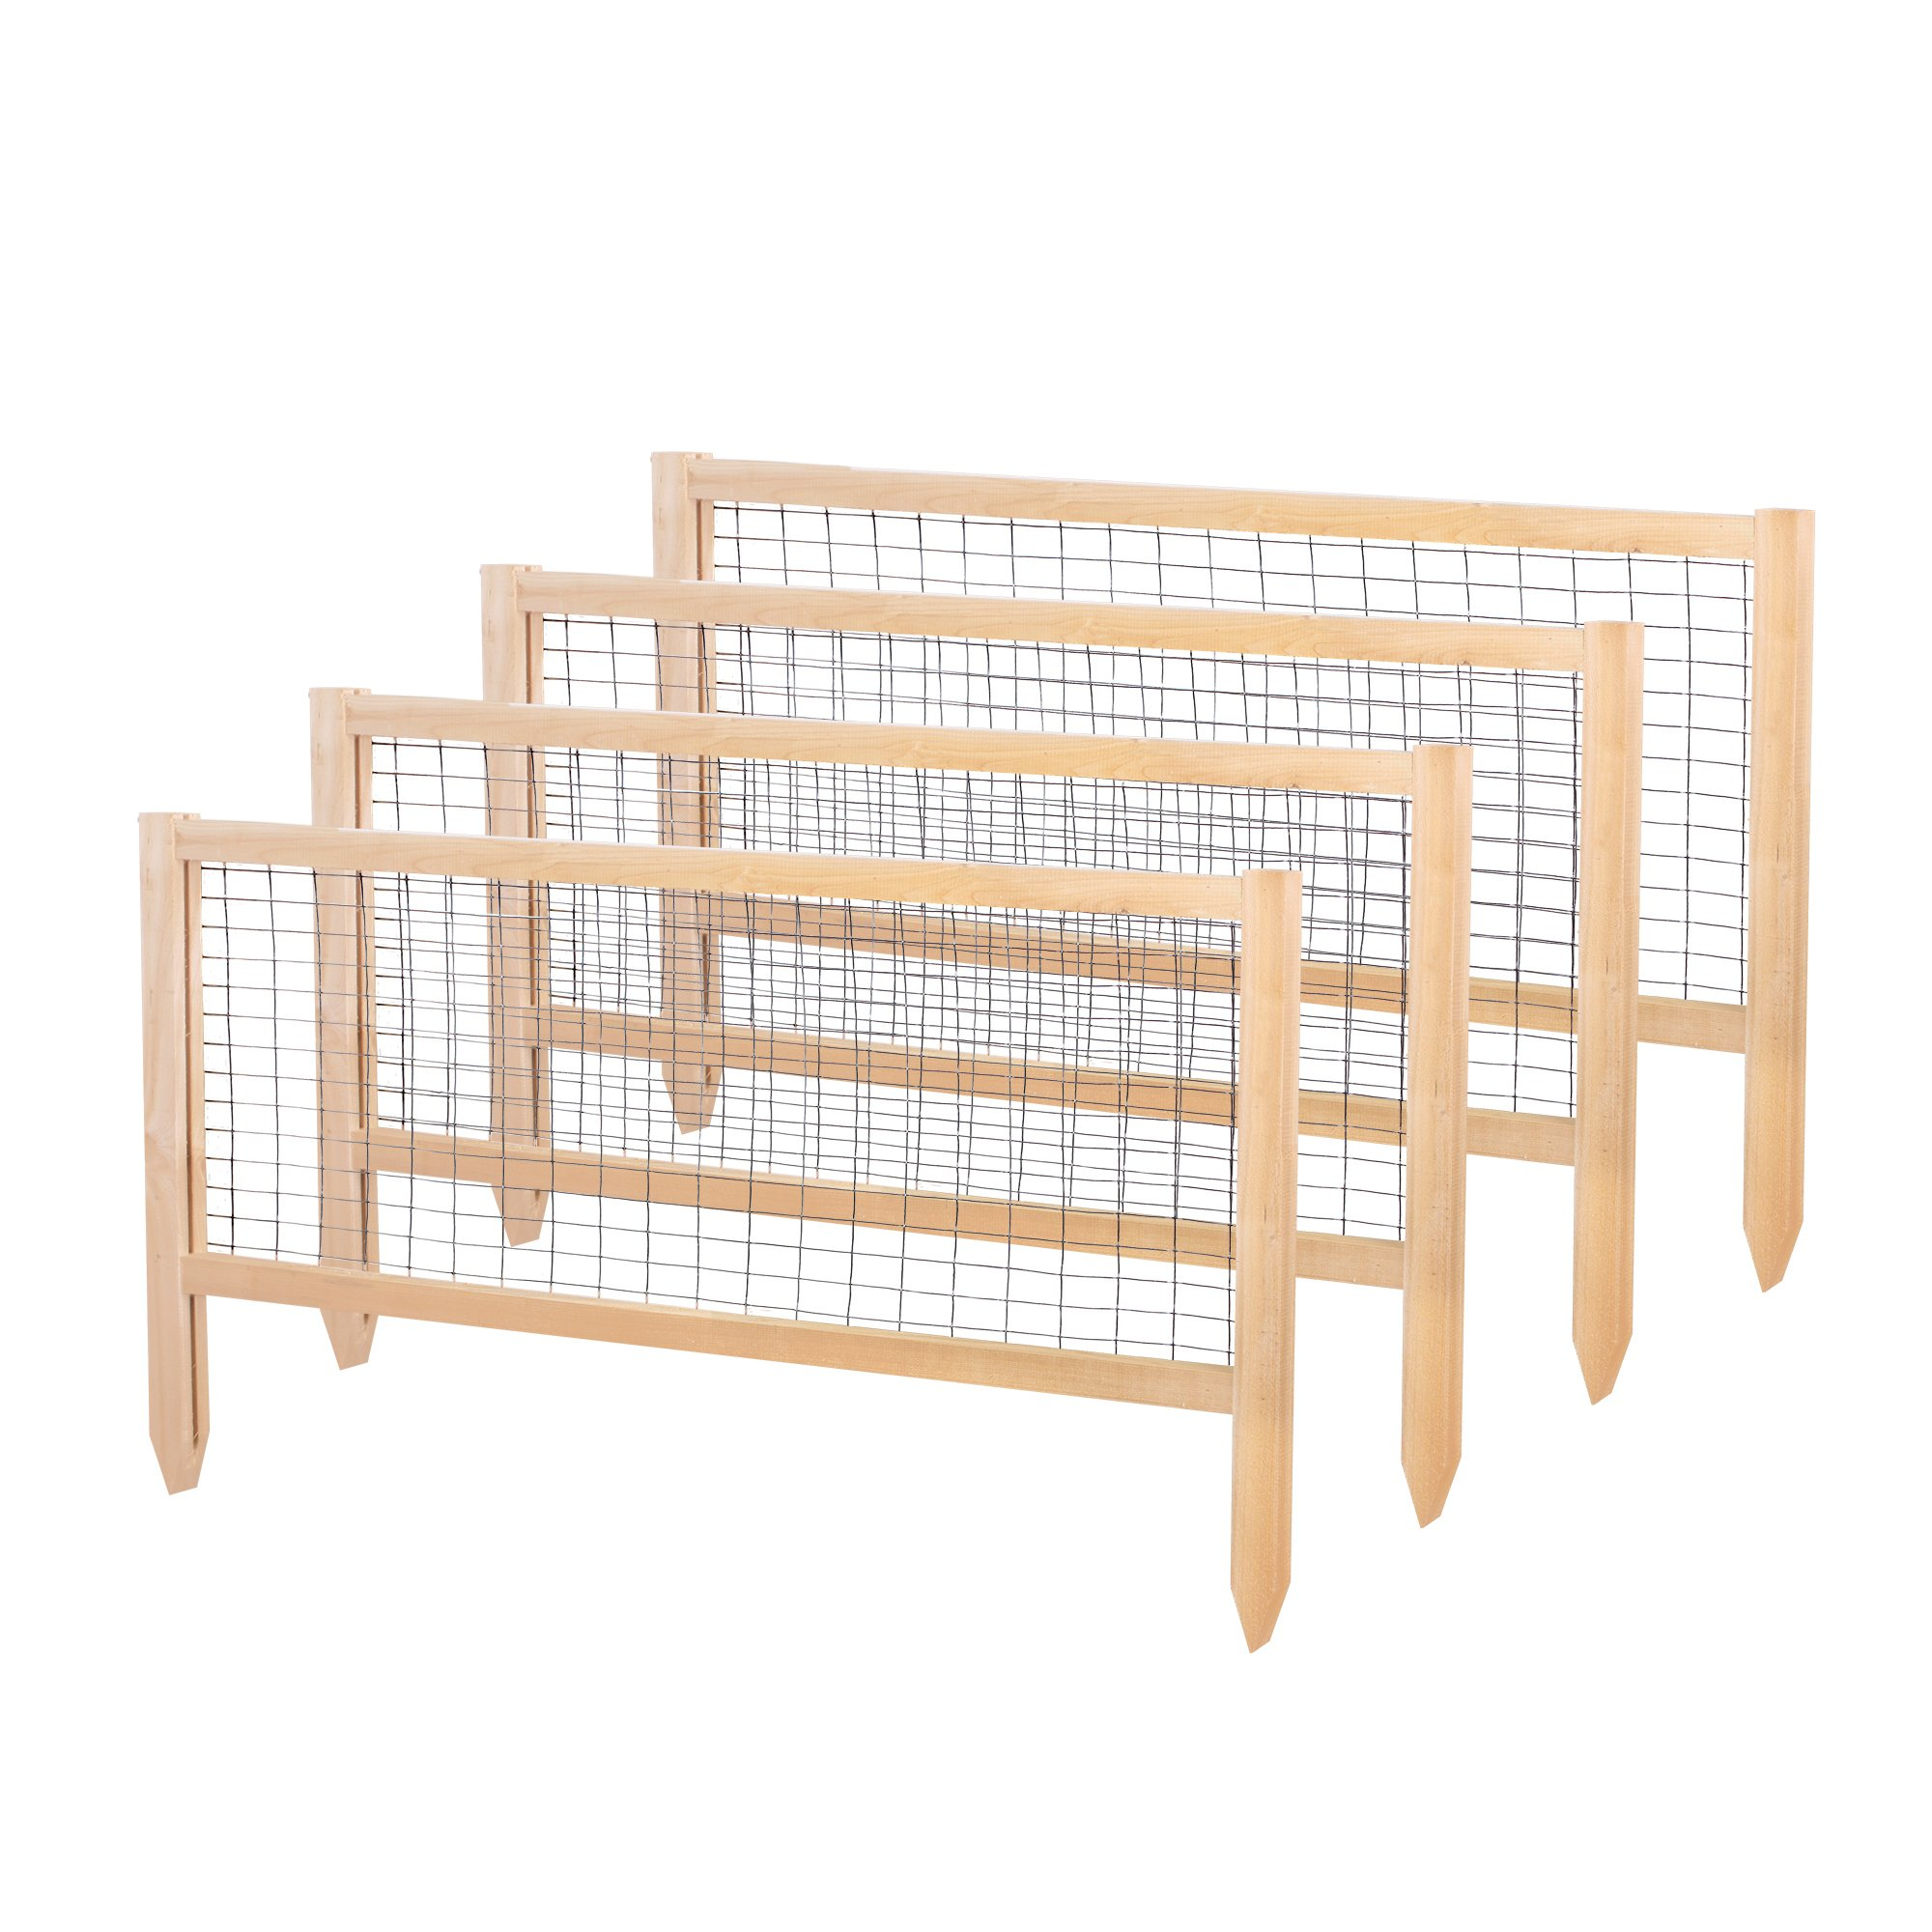 Greenes Fence RCCG4PK CritterGuard Cedar Garden Fence, Pack of 4, 23.5'' by Greenes Fence